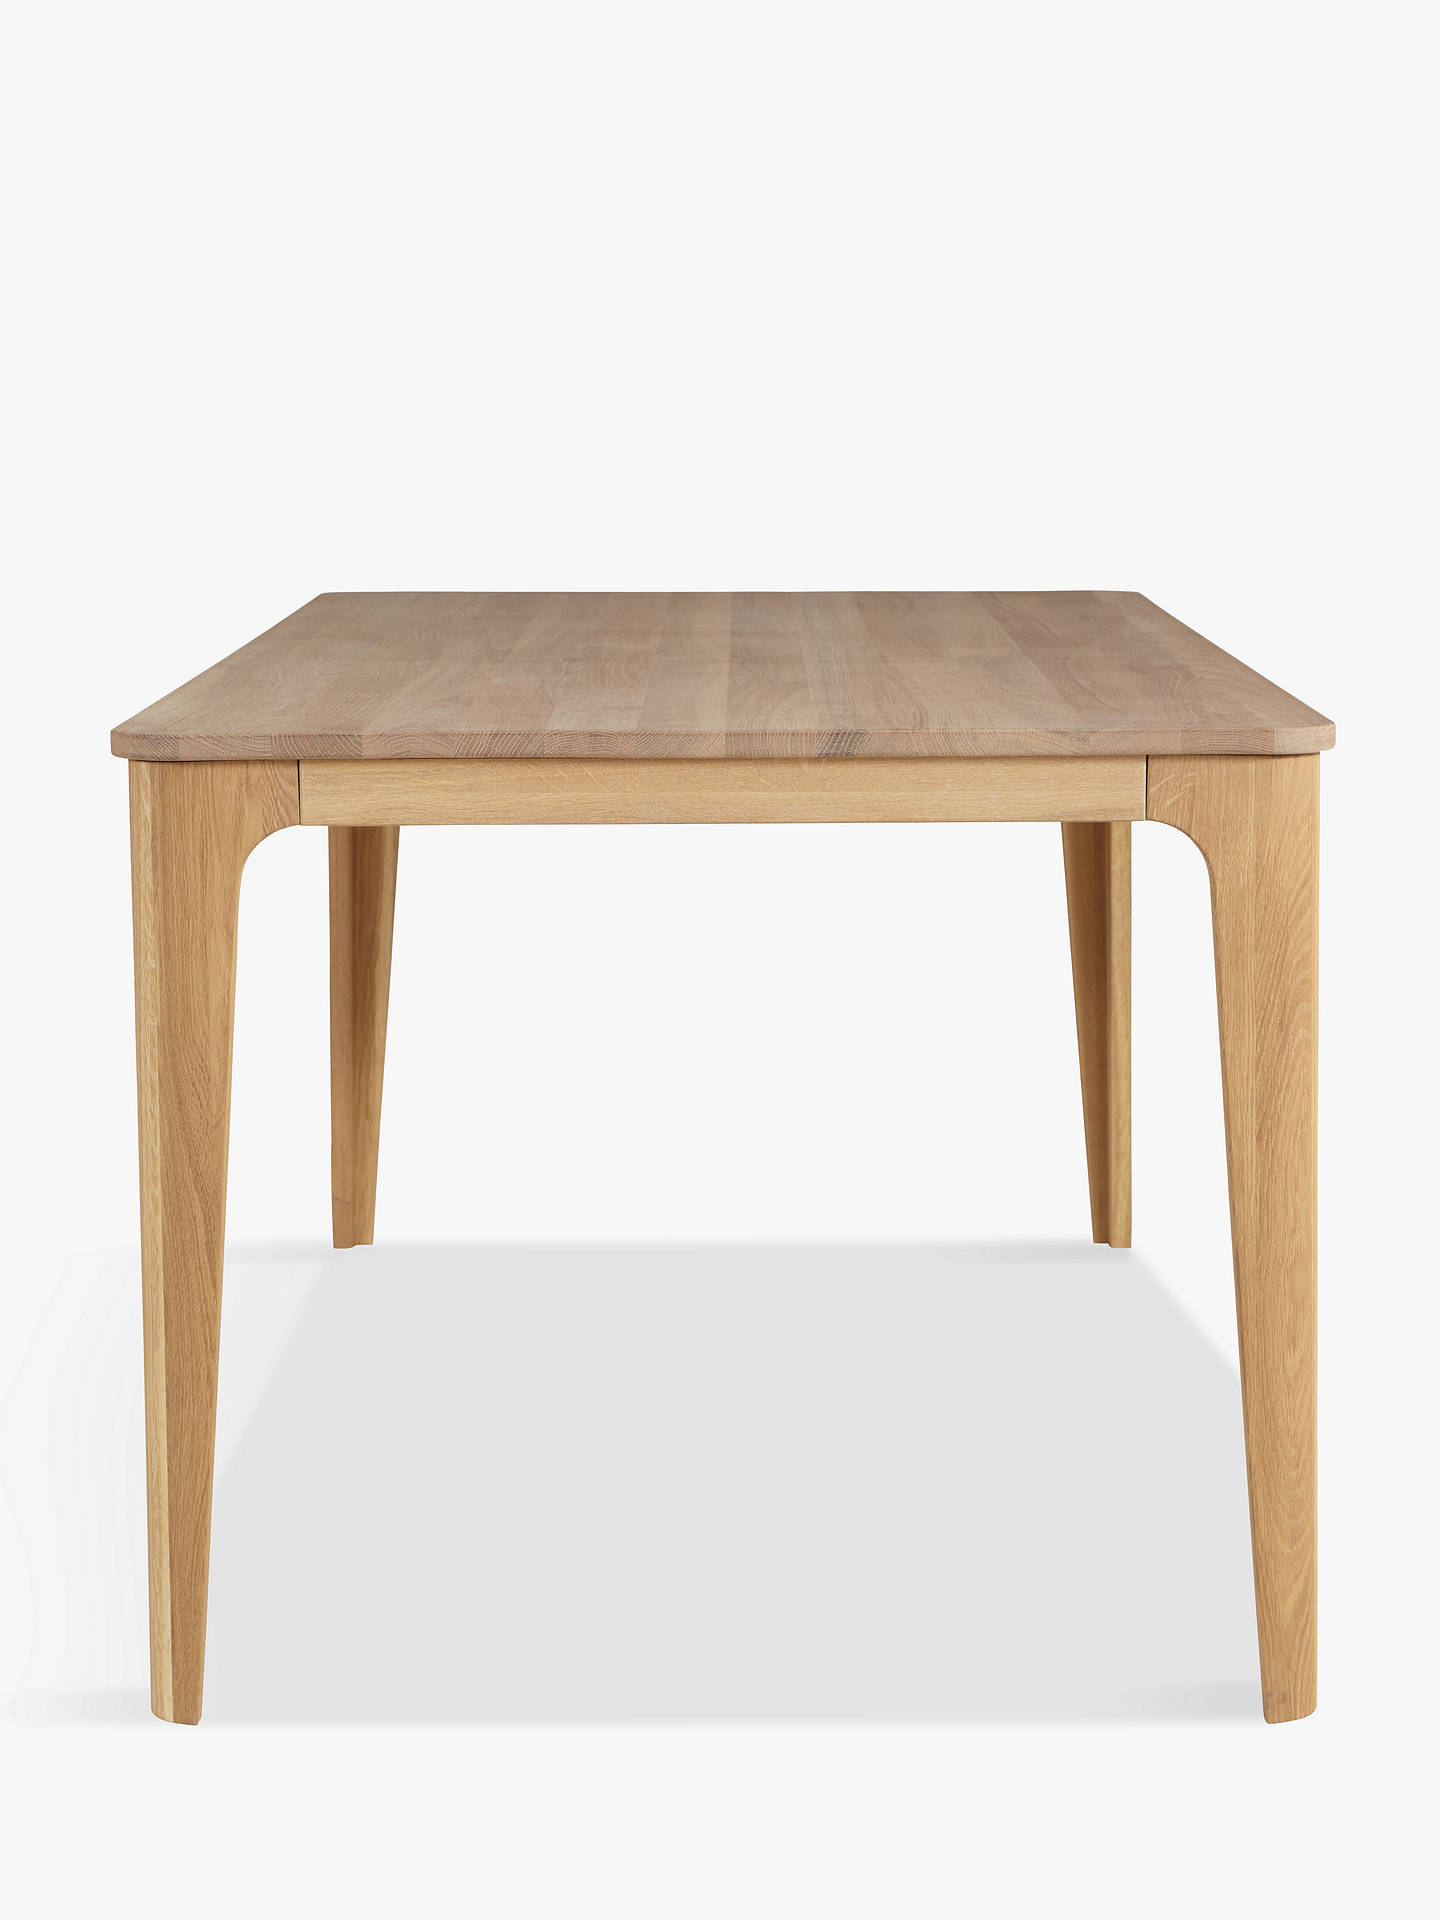 BuyEbbe Gehl for John Lewis Mira 6 Seater Dining Table, Oak Online at johnlewis.com